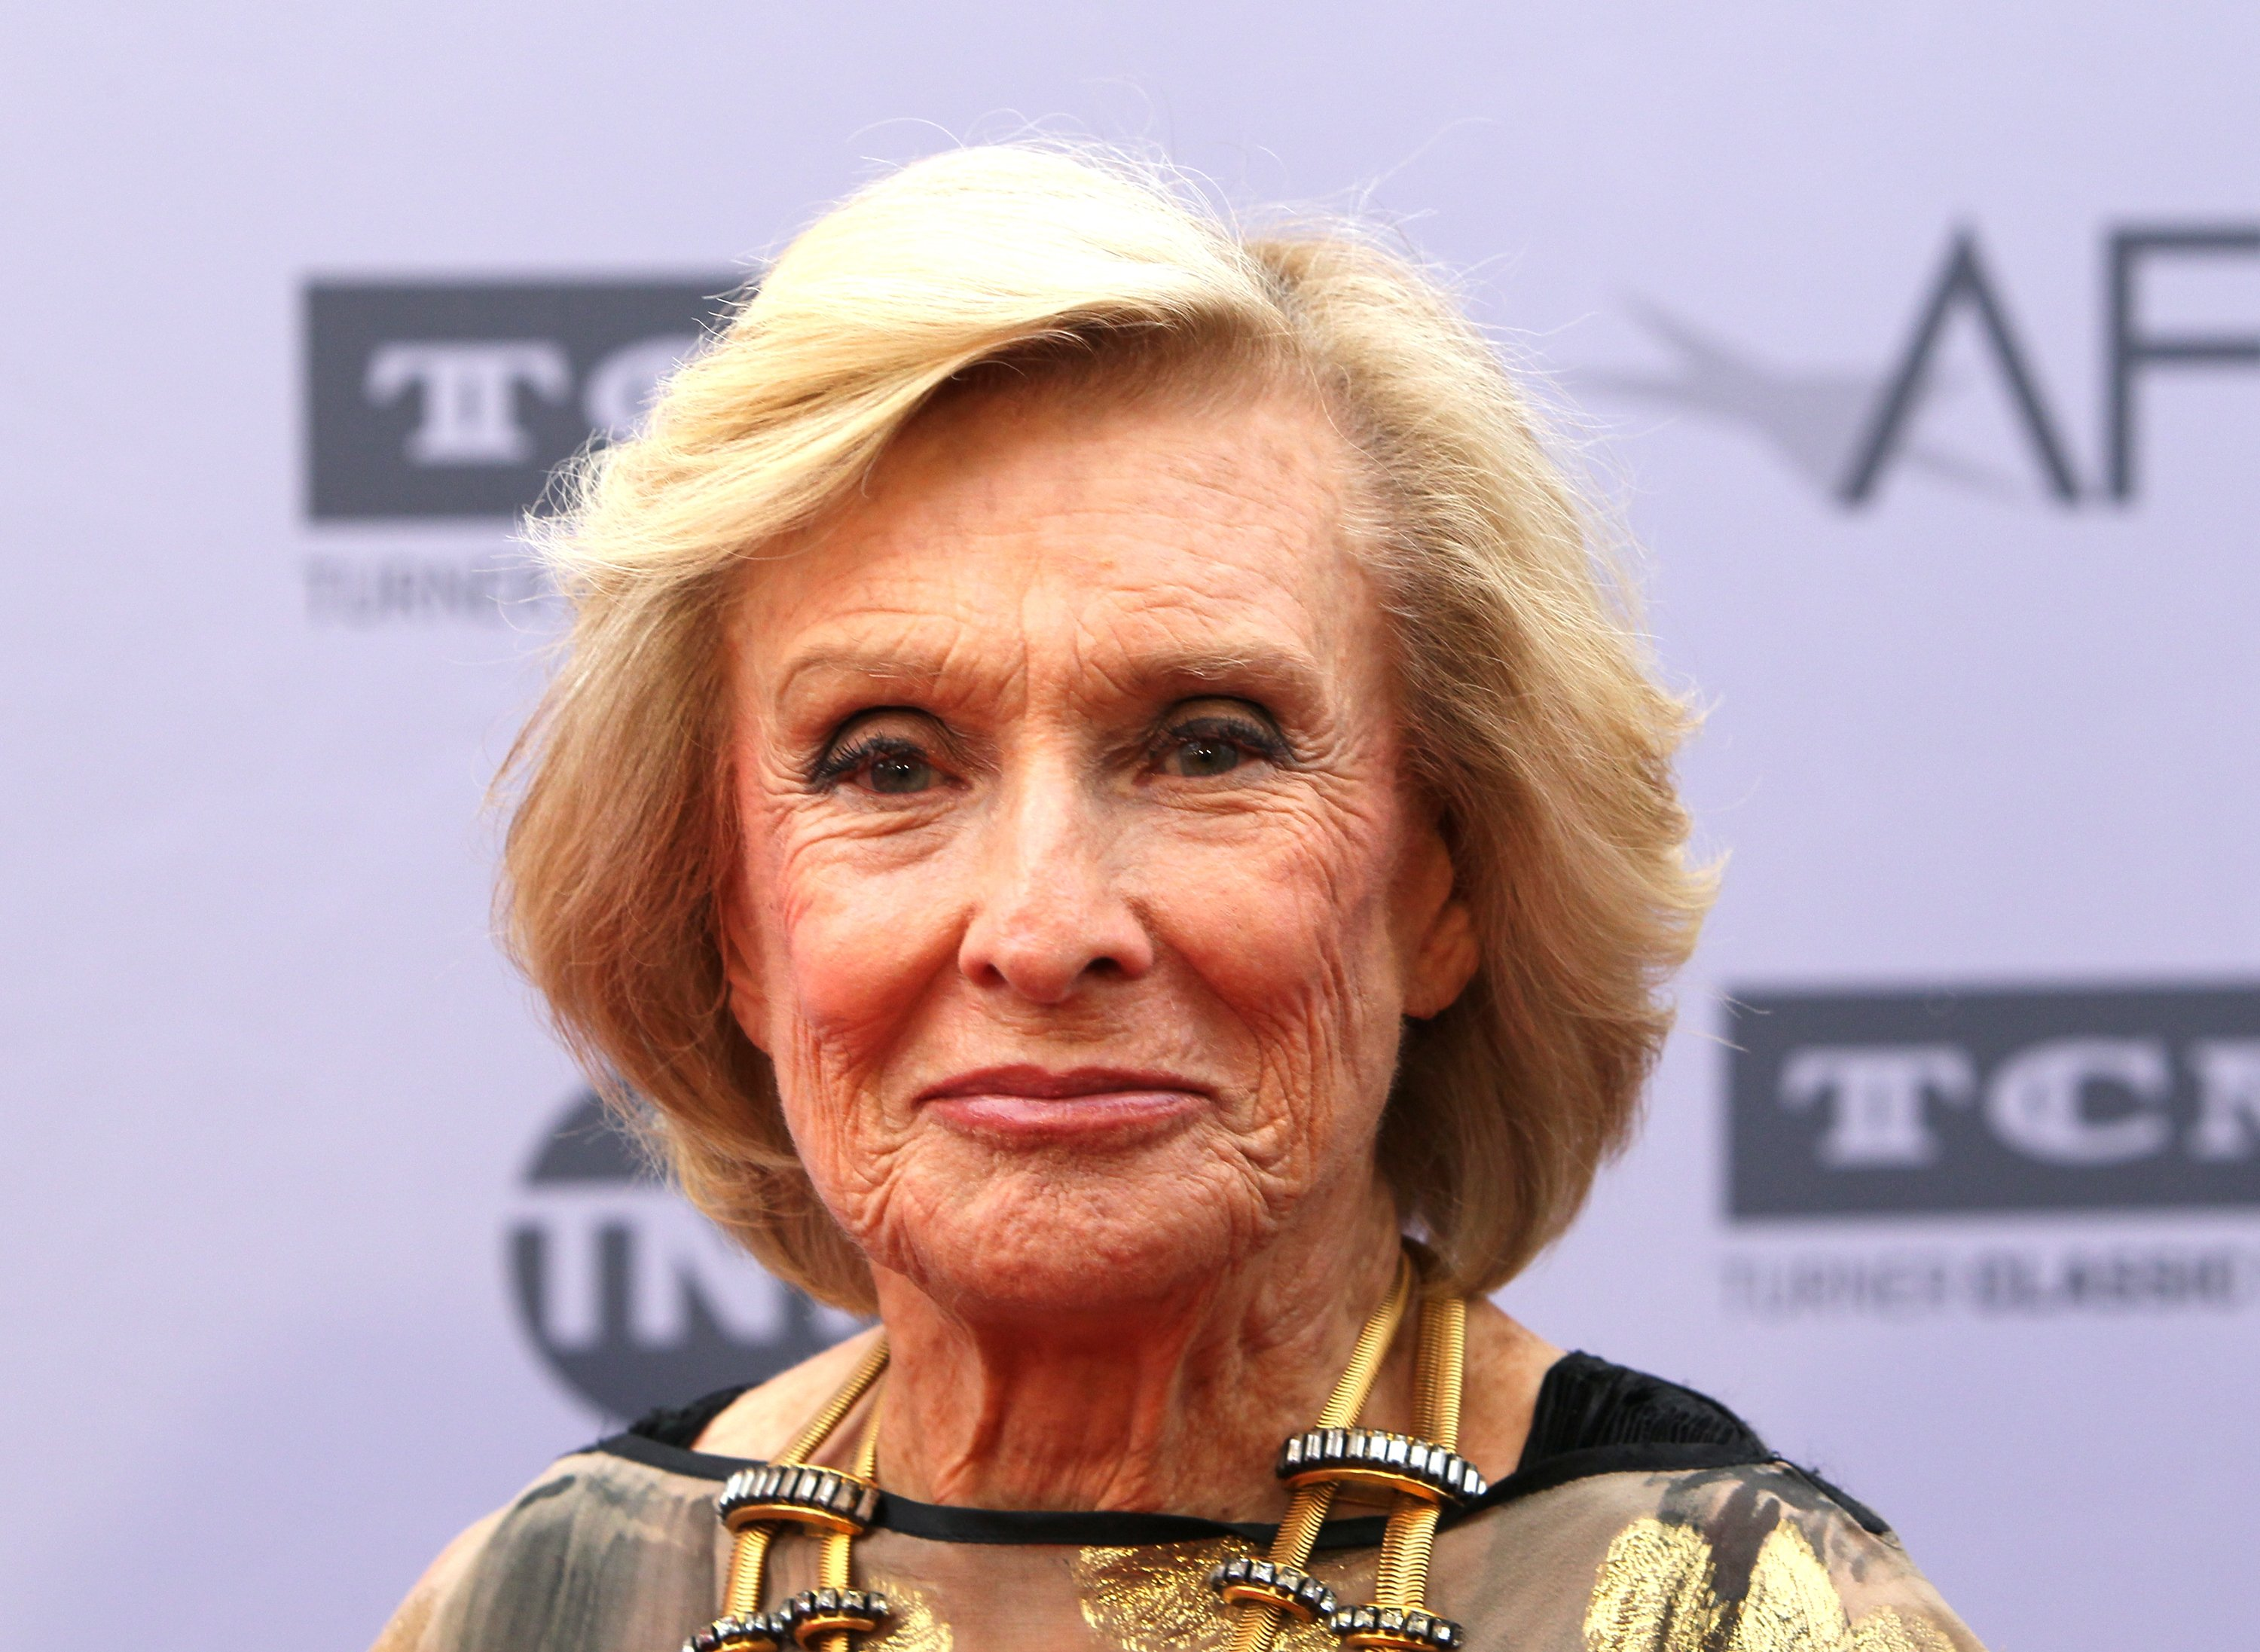 Cloris Leachman attends American Film Institute's 44th Life Achievement Award Gala Tribute to John Williams at Dolby Theatre on June 9, 2016 in Hollywood, California | Photo: Getty Images